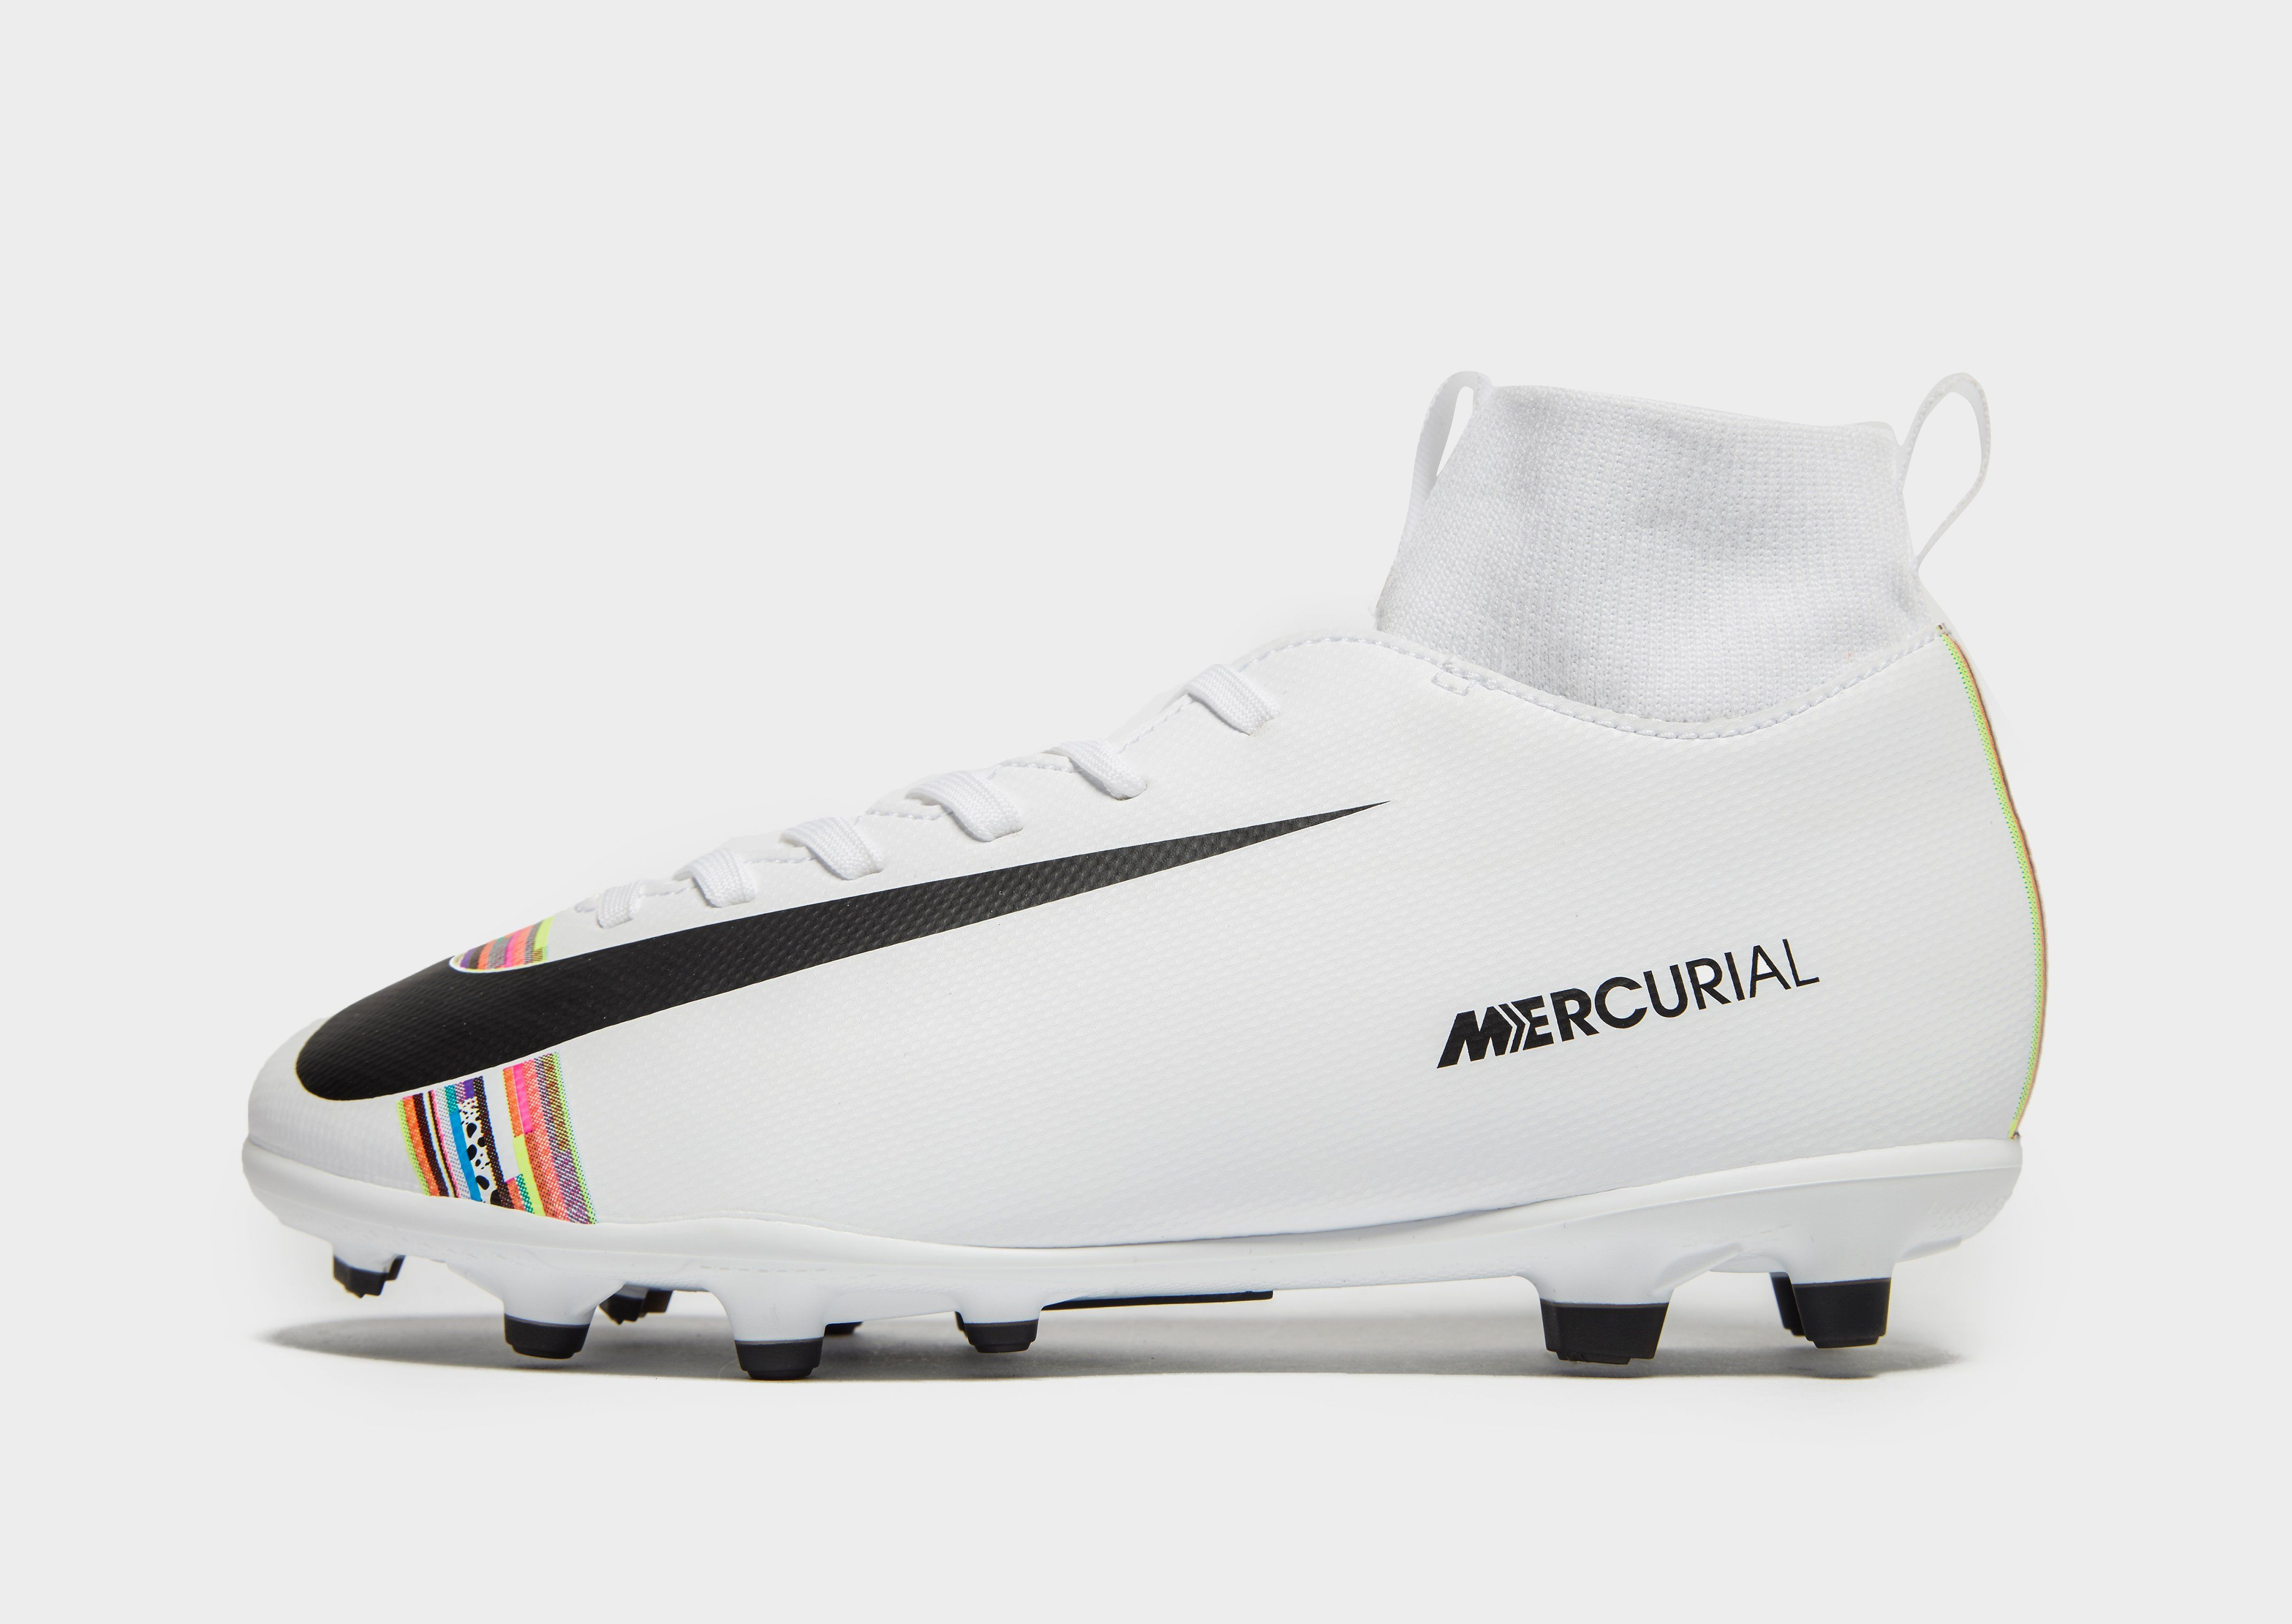 541a25e1934 NIKE Nike Jr. Mercurial Superfly VI Club CR7 Younger Older Kids  Multi- Ground Football Boot